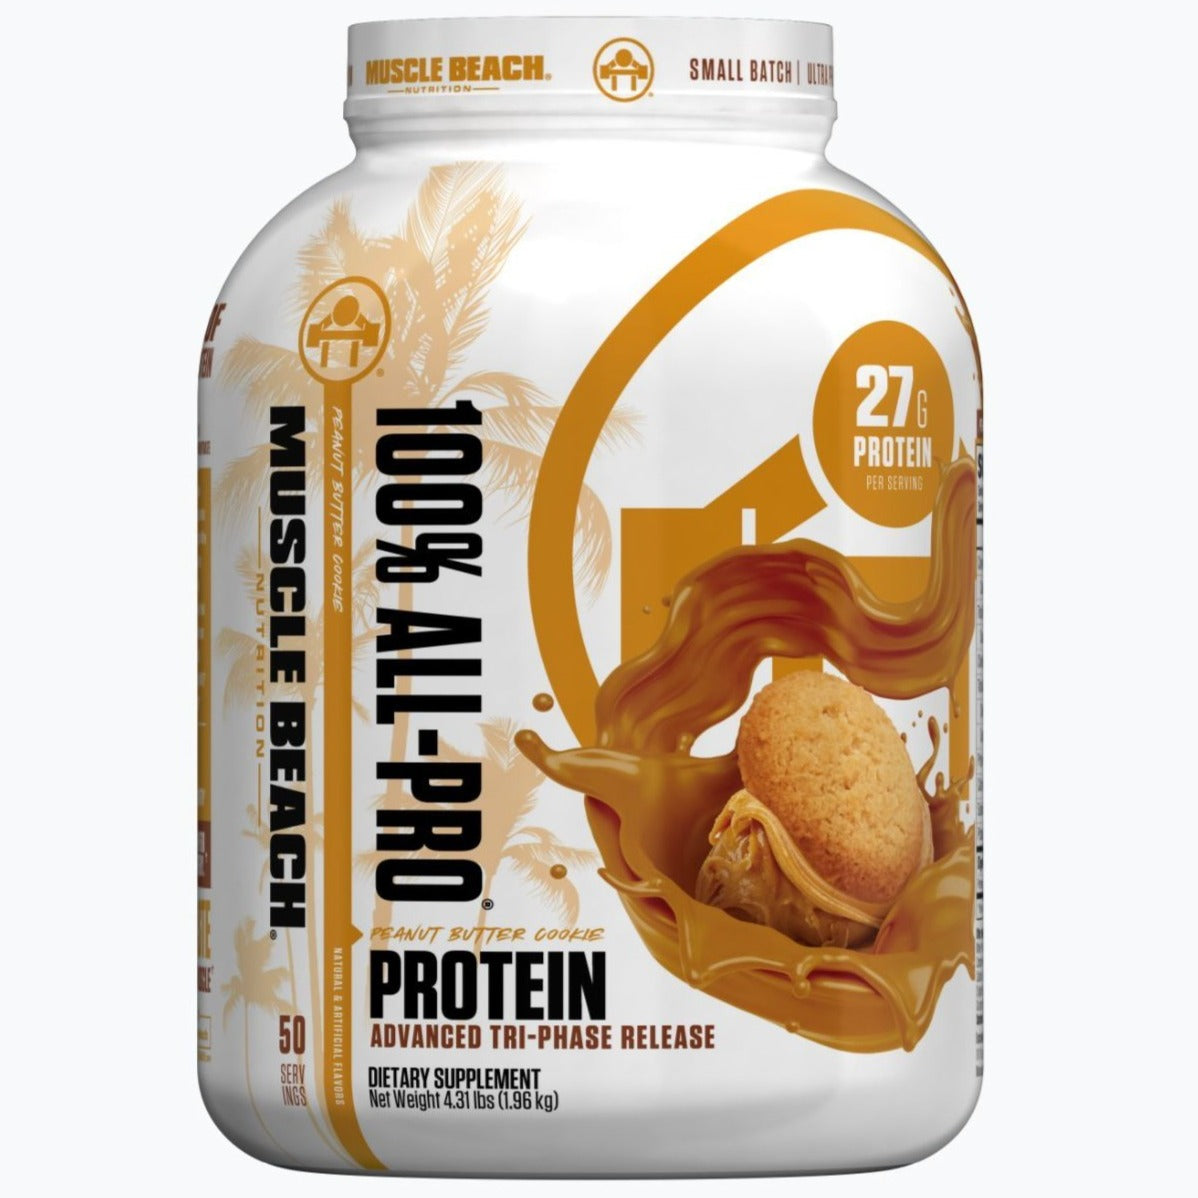 NEW- 100% ALL PRO® PROTEIN - Muscle Beach